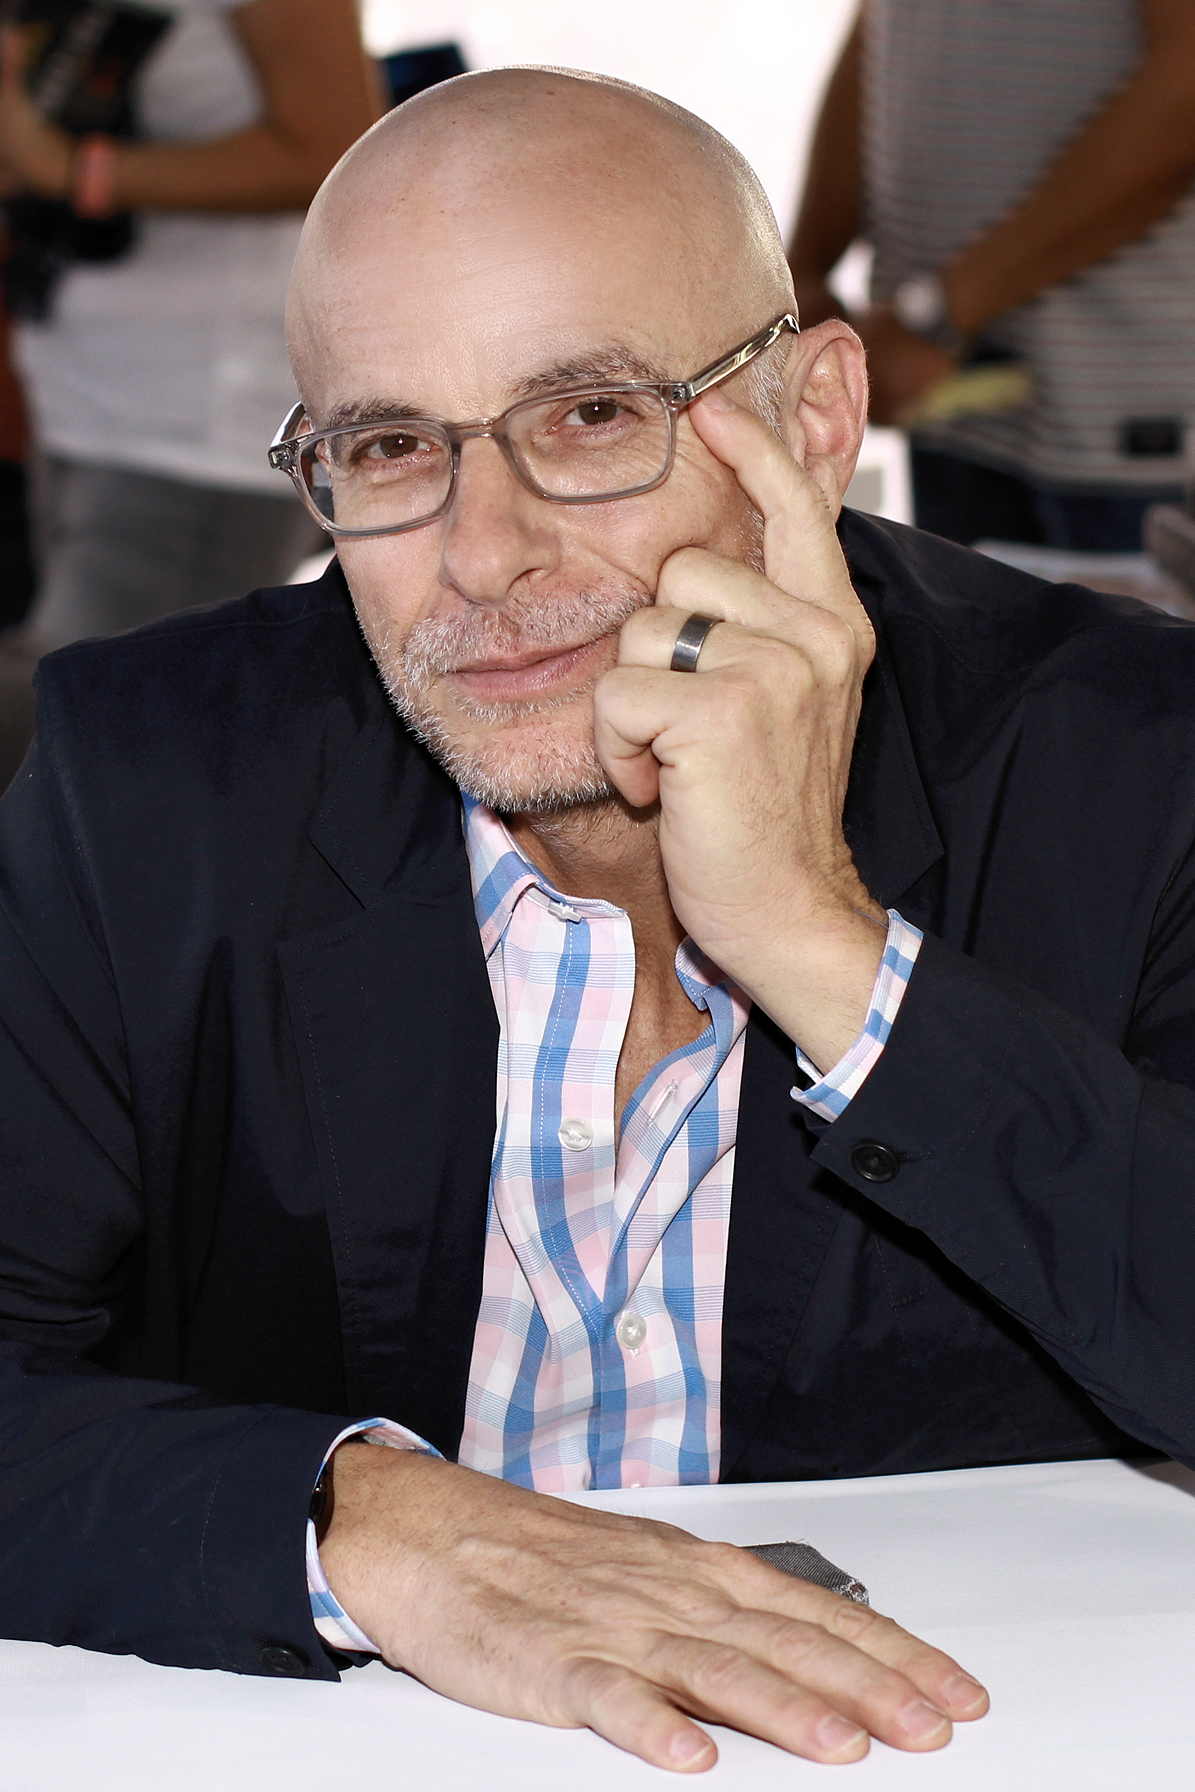 Treuer at the 2019 Texas Book Festival